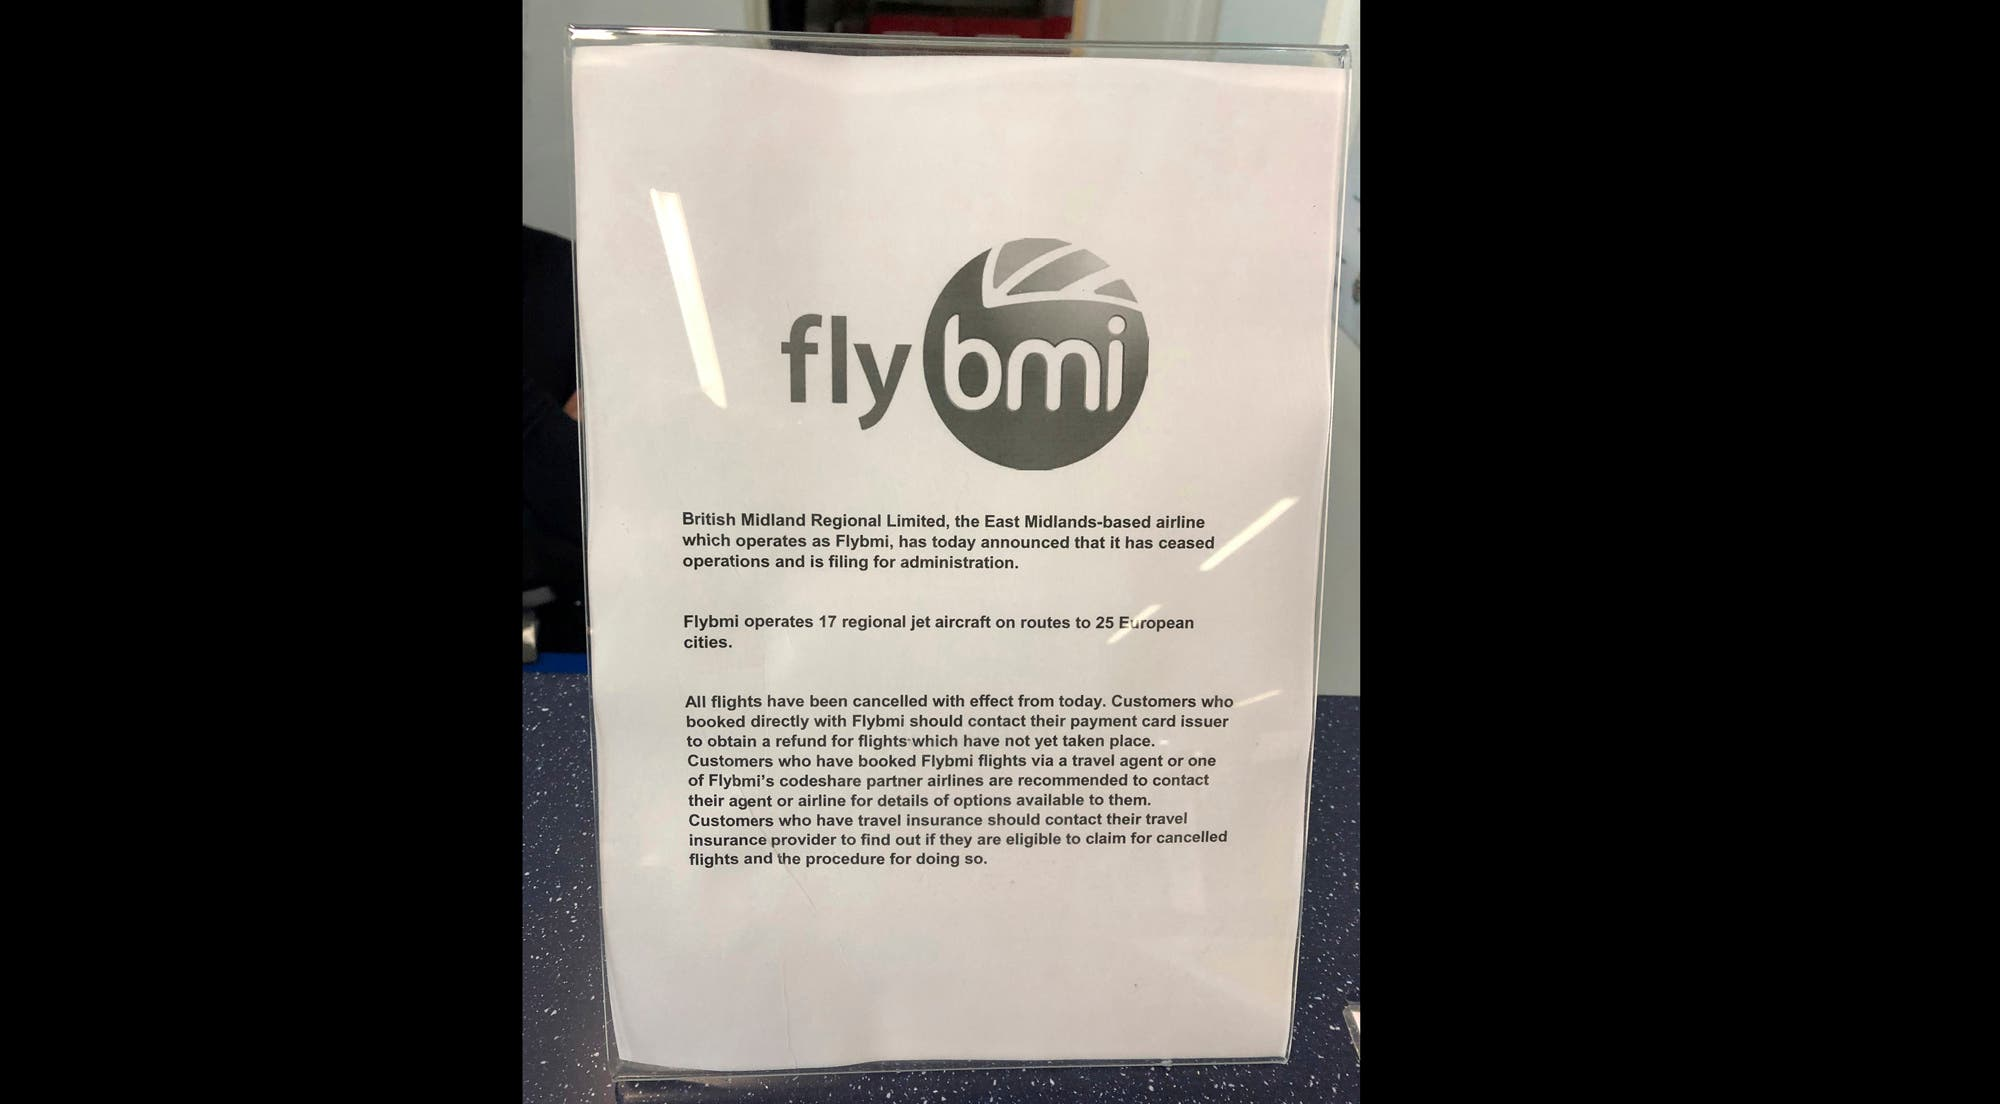 A notice informing passengers that flybmi flights have been cancelled following the collapse of the airline, at Bristol Airport in Bristol, England. (AP)